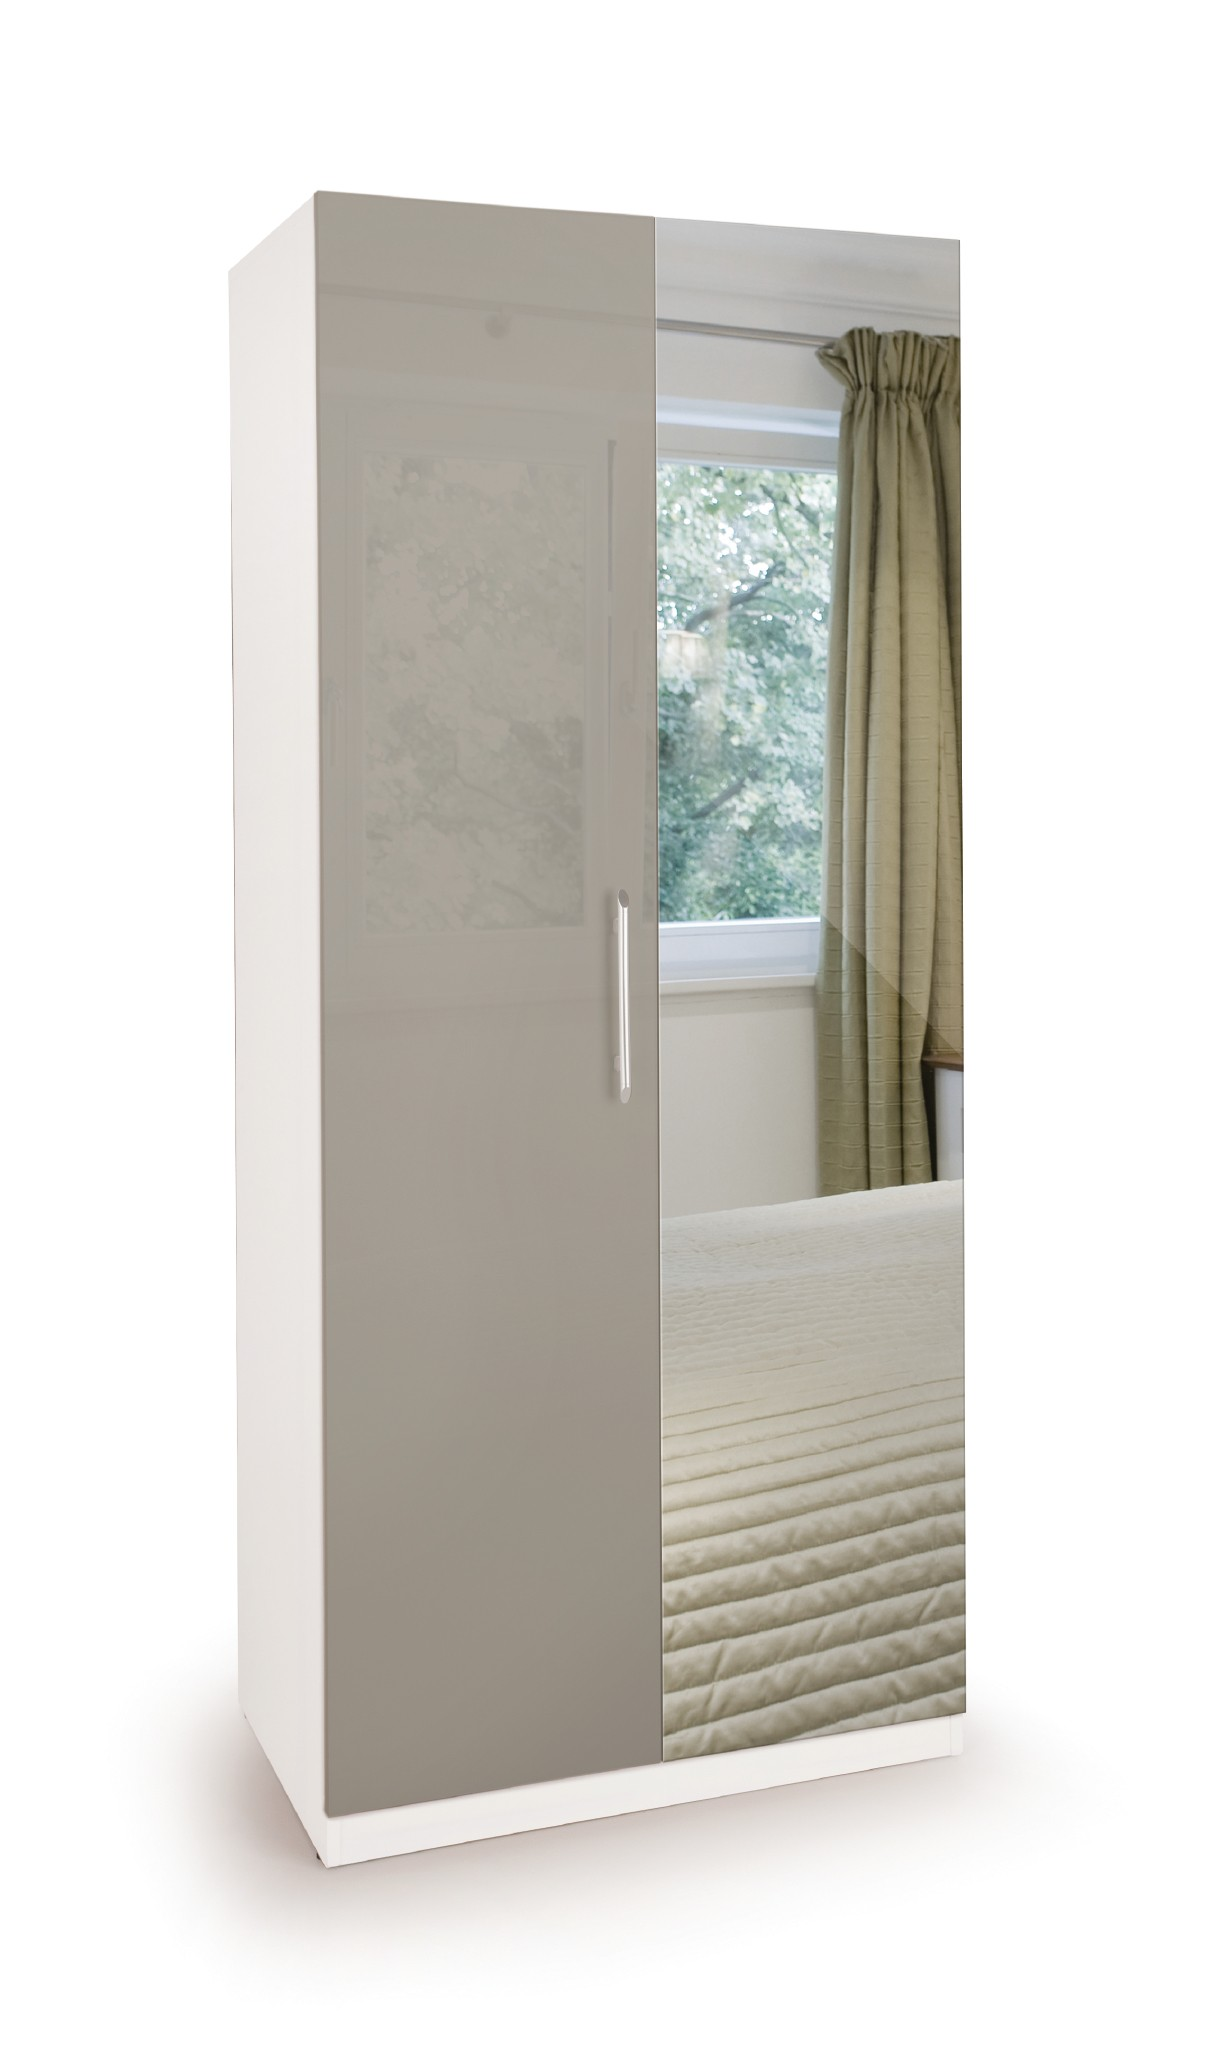 Connect Bayswater 2 Door Wardrobe with Mirror